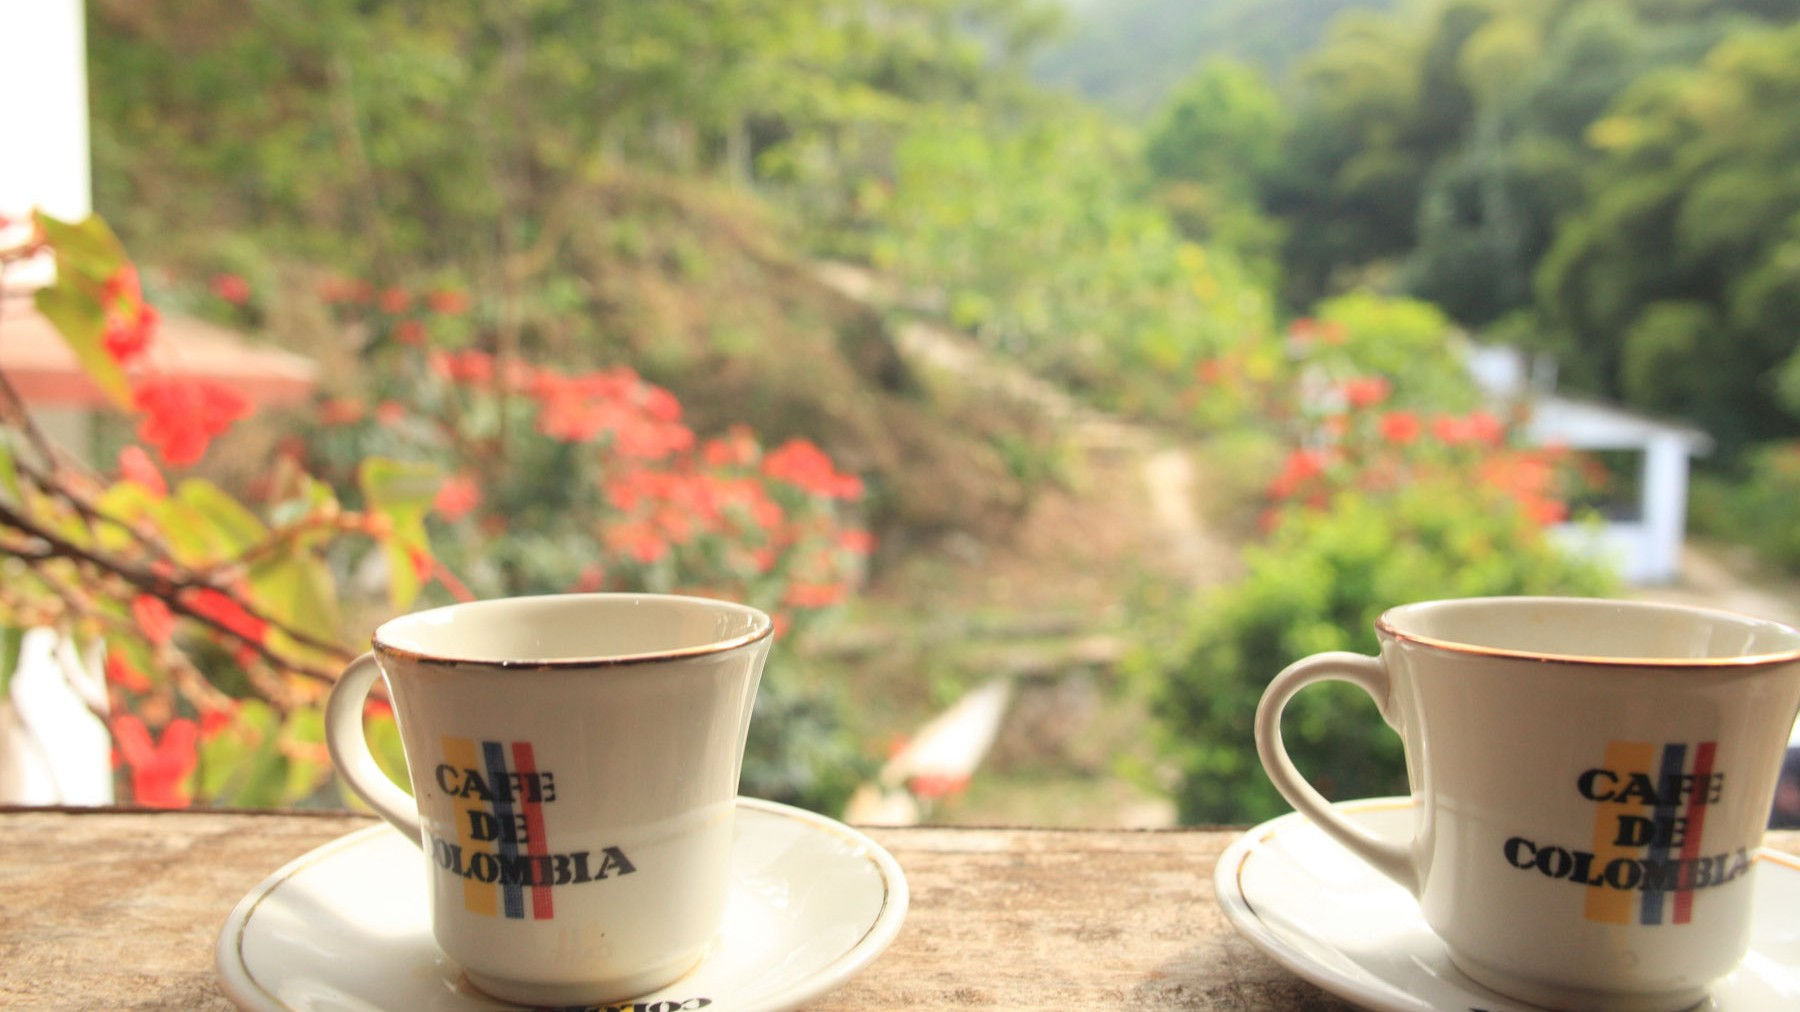 colombiancoffee_IMG_1857